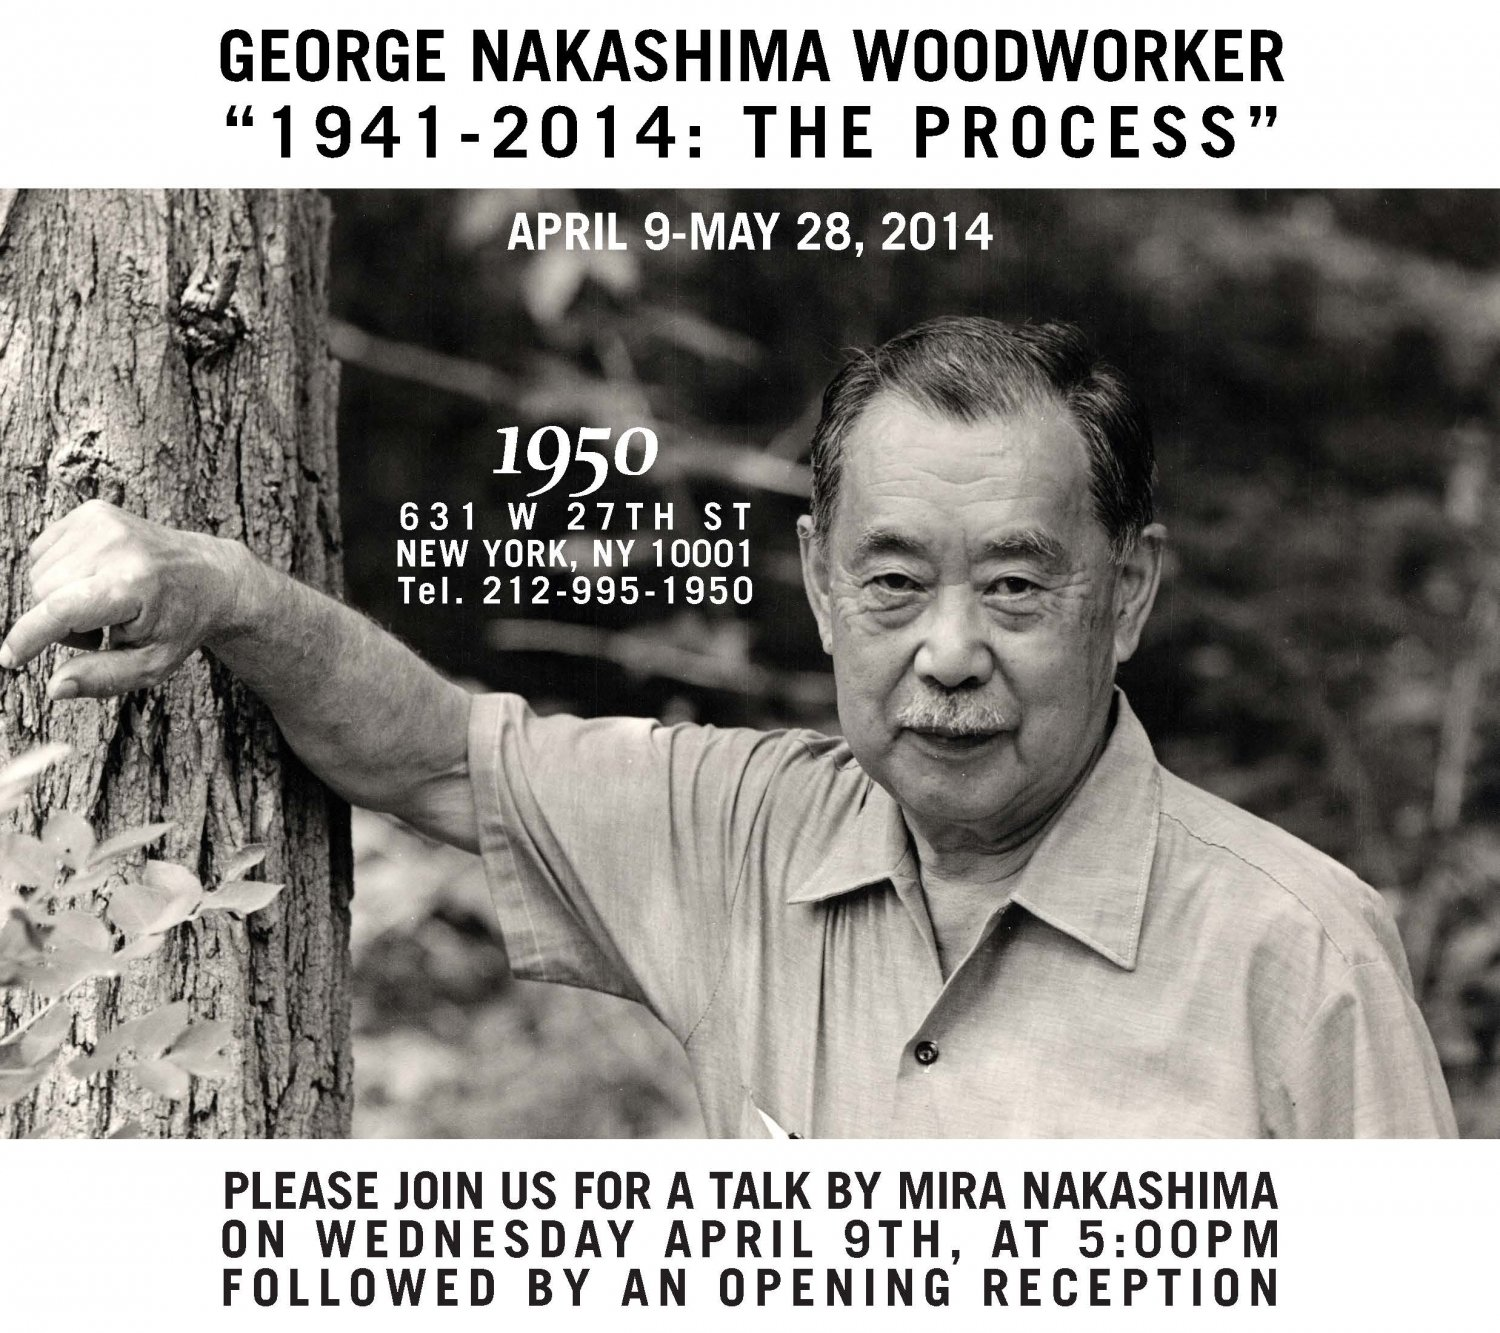 More than 70 years of furniture making by two generations of Nakashima's gets the spotlight at the gallery show.  Photo 4 of 4 in Exploring the process of George Nakashima Woodworker